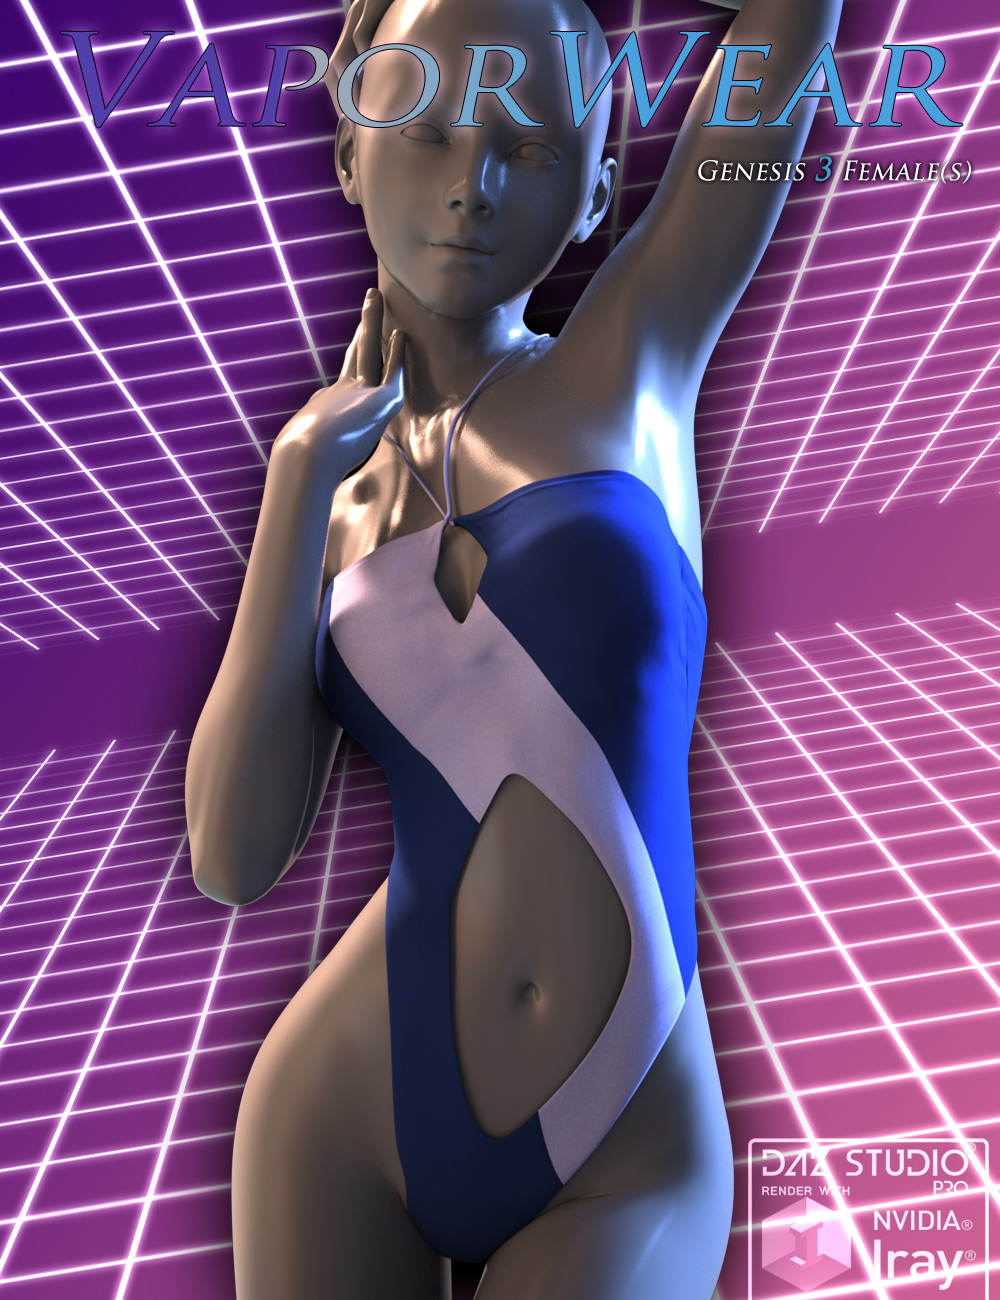 VaporWear for Genesis 3 Females